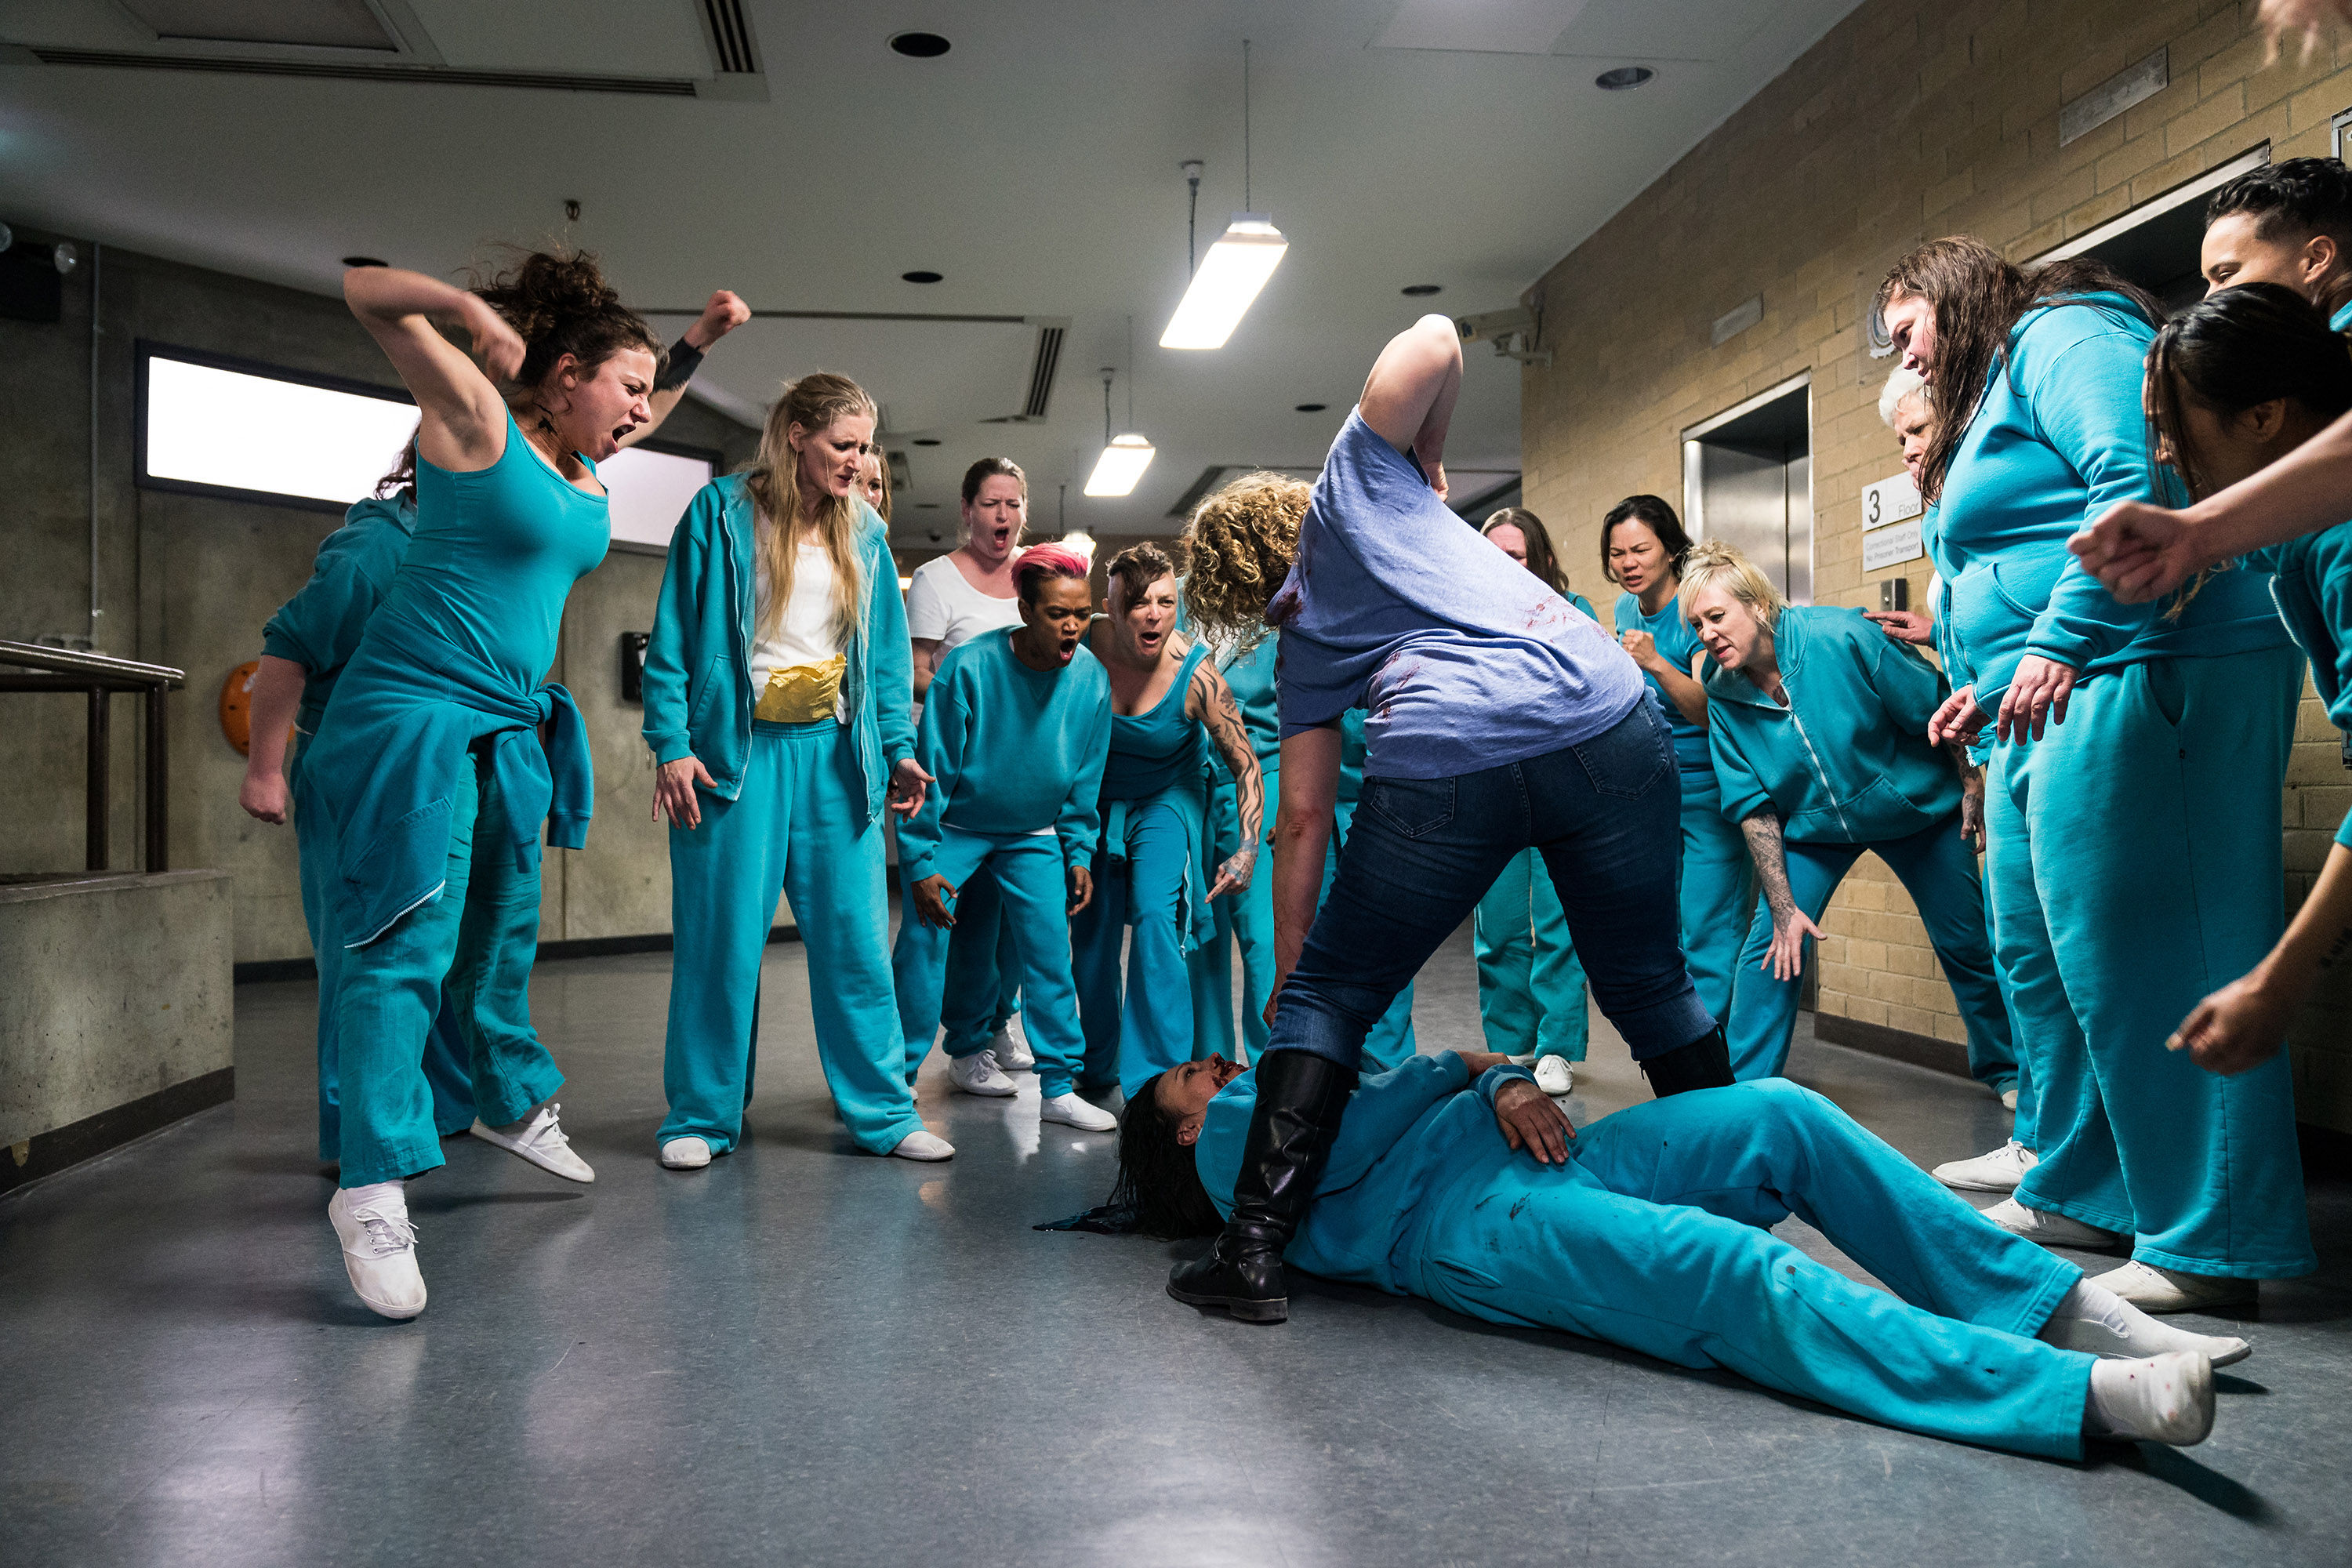 Wentworth Prison S6 Ep 12 - EMBARGO 3 SEPTEMBER 2018